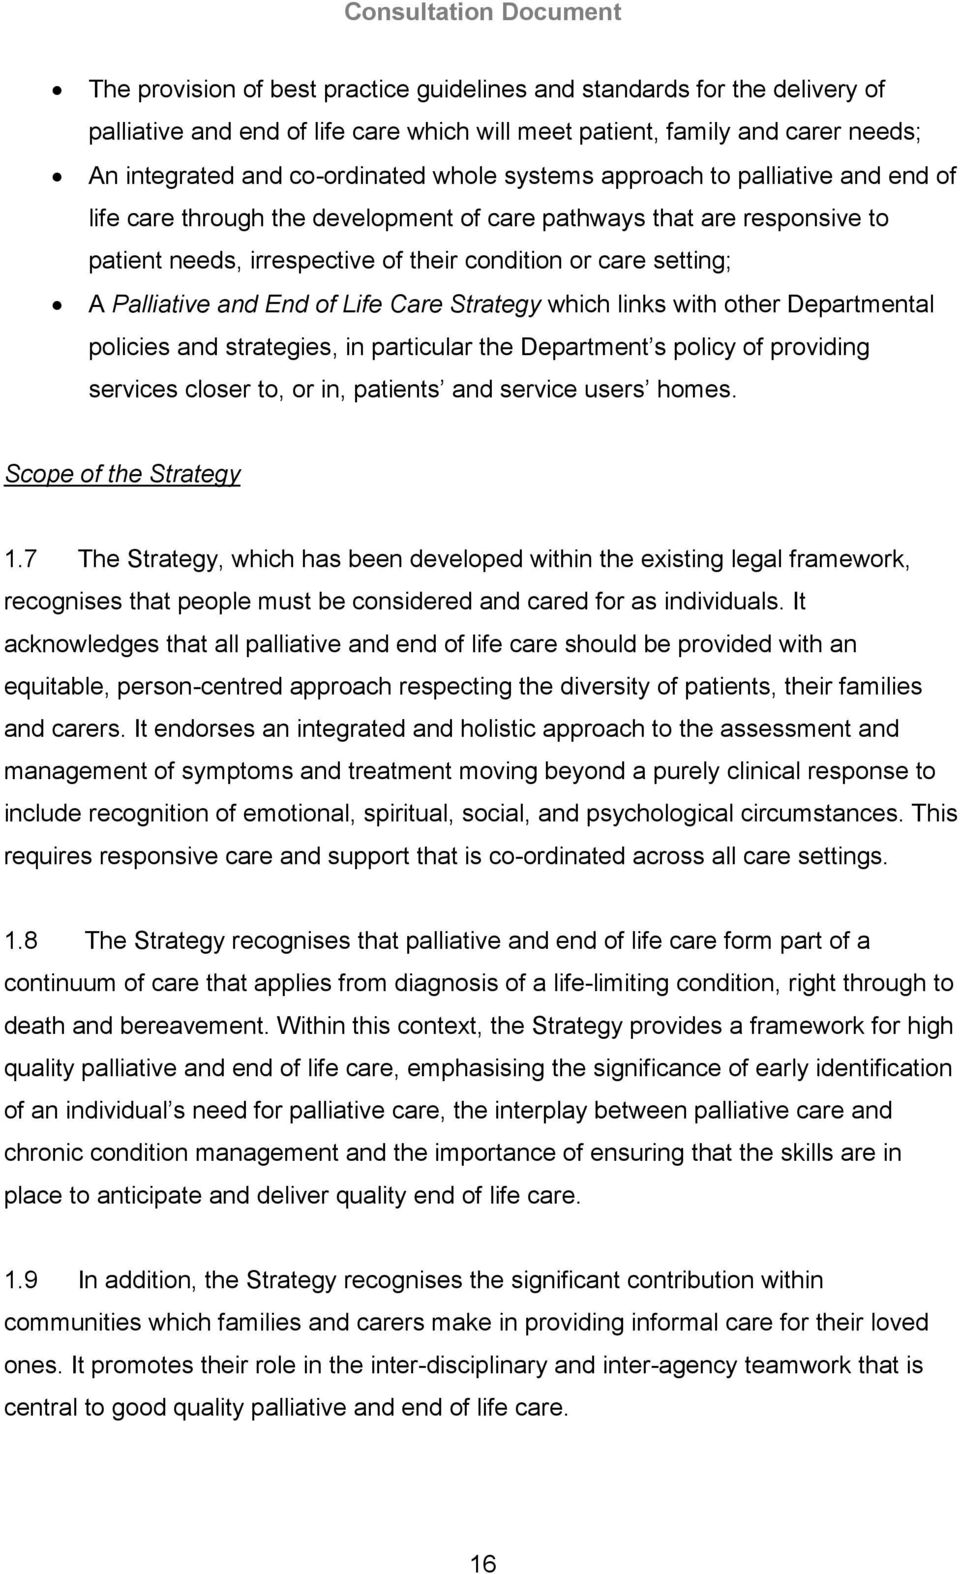 End of Life Care Strategy which links with other Departmental policies and strategies, in particular the Department s policy of providing services closer to, or in, patients and service users homes.